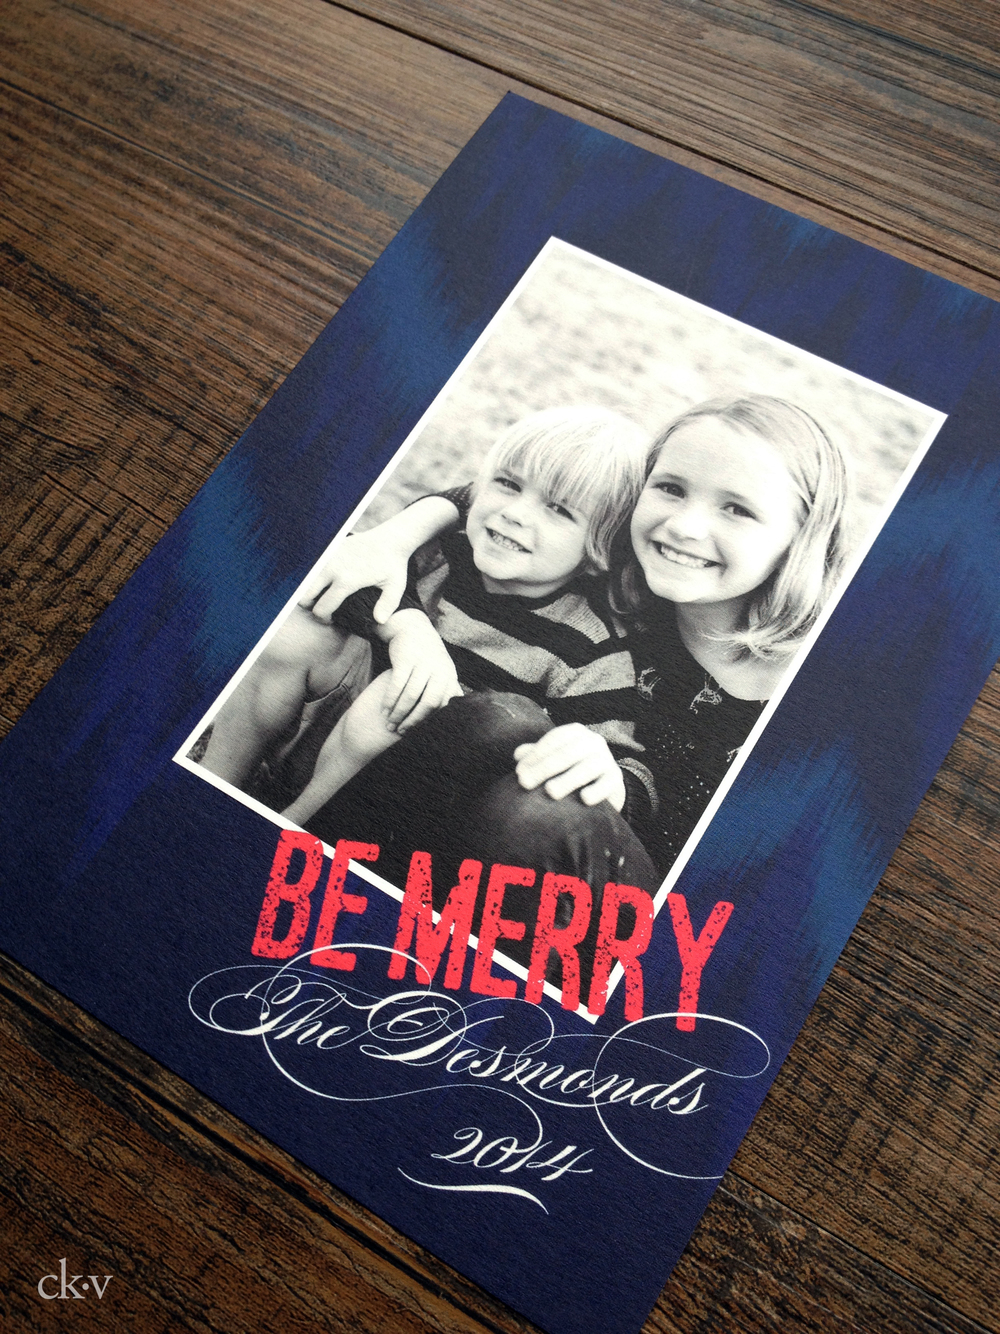 IKAT DENIM BLUE AND FUCHSIA HOLIDAY PHOTO CARD